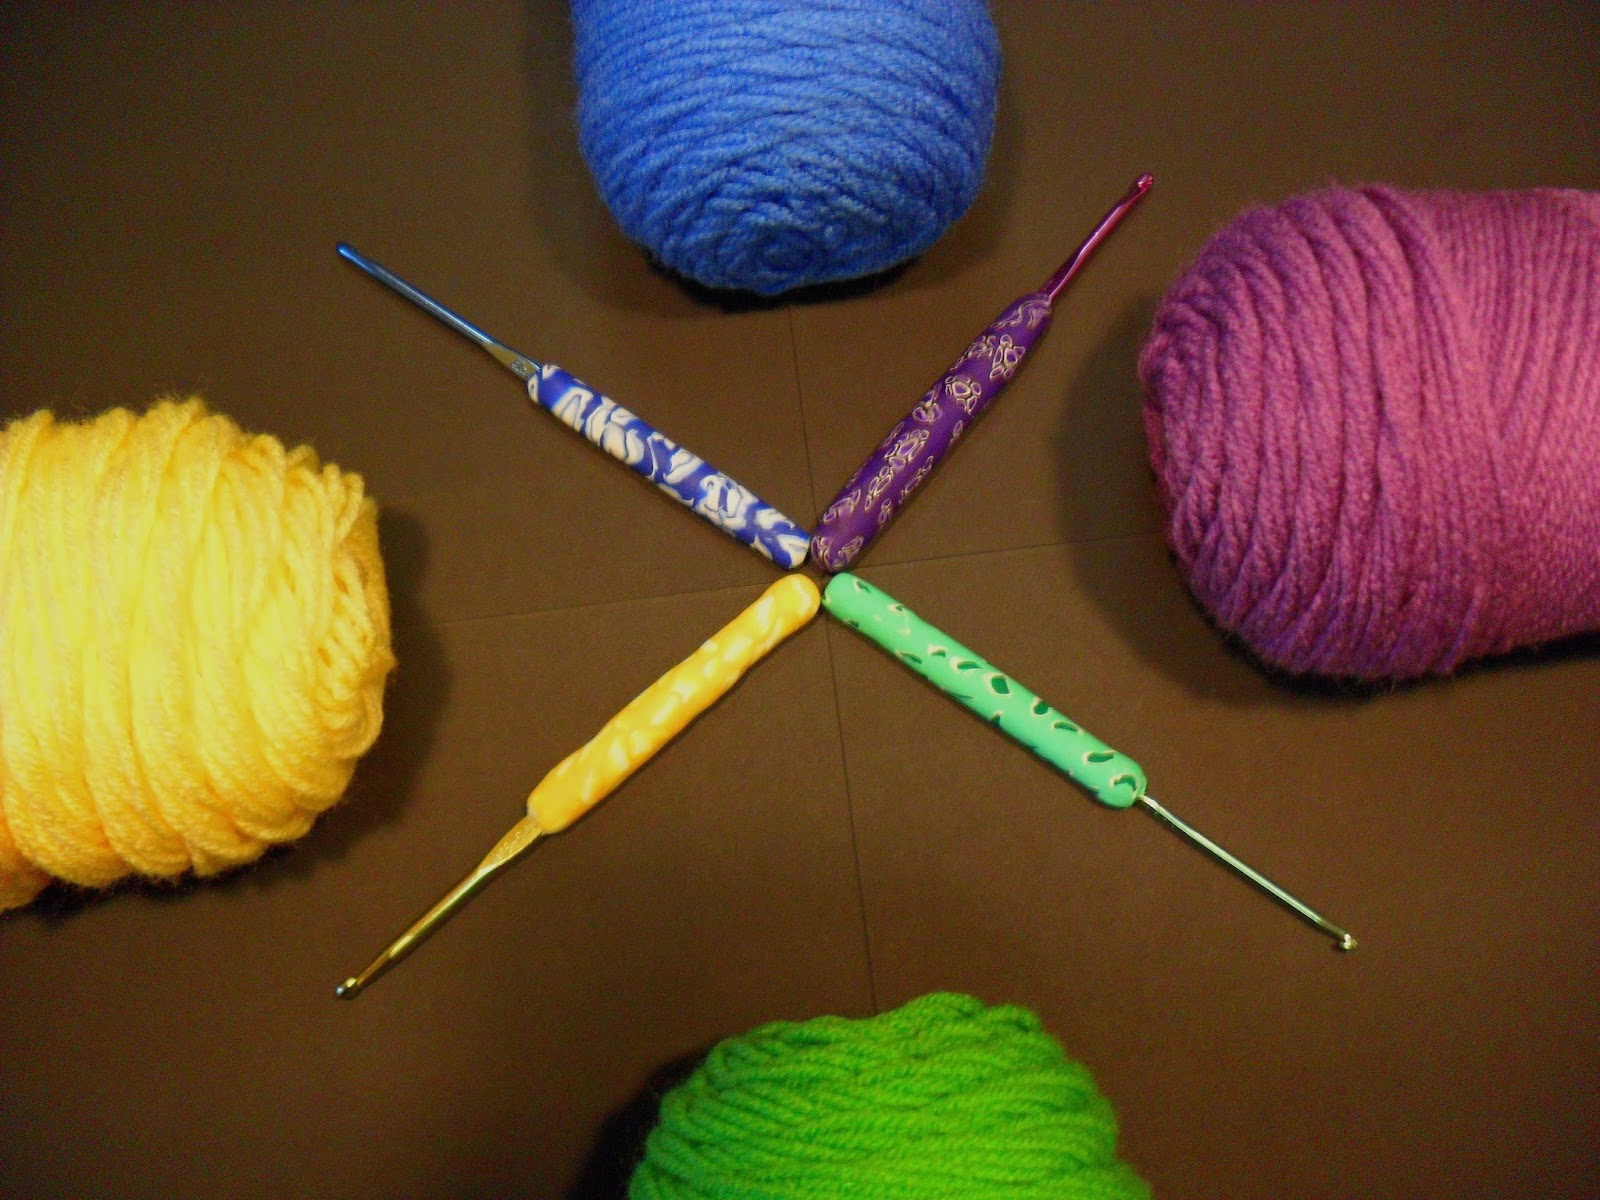 Law Student To Life Student Colorful Polymer Clay Crochet Hook Grips